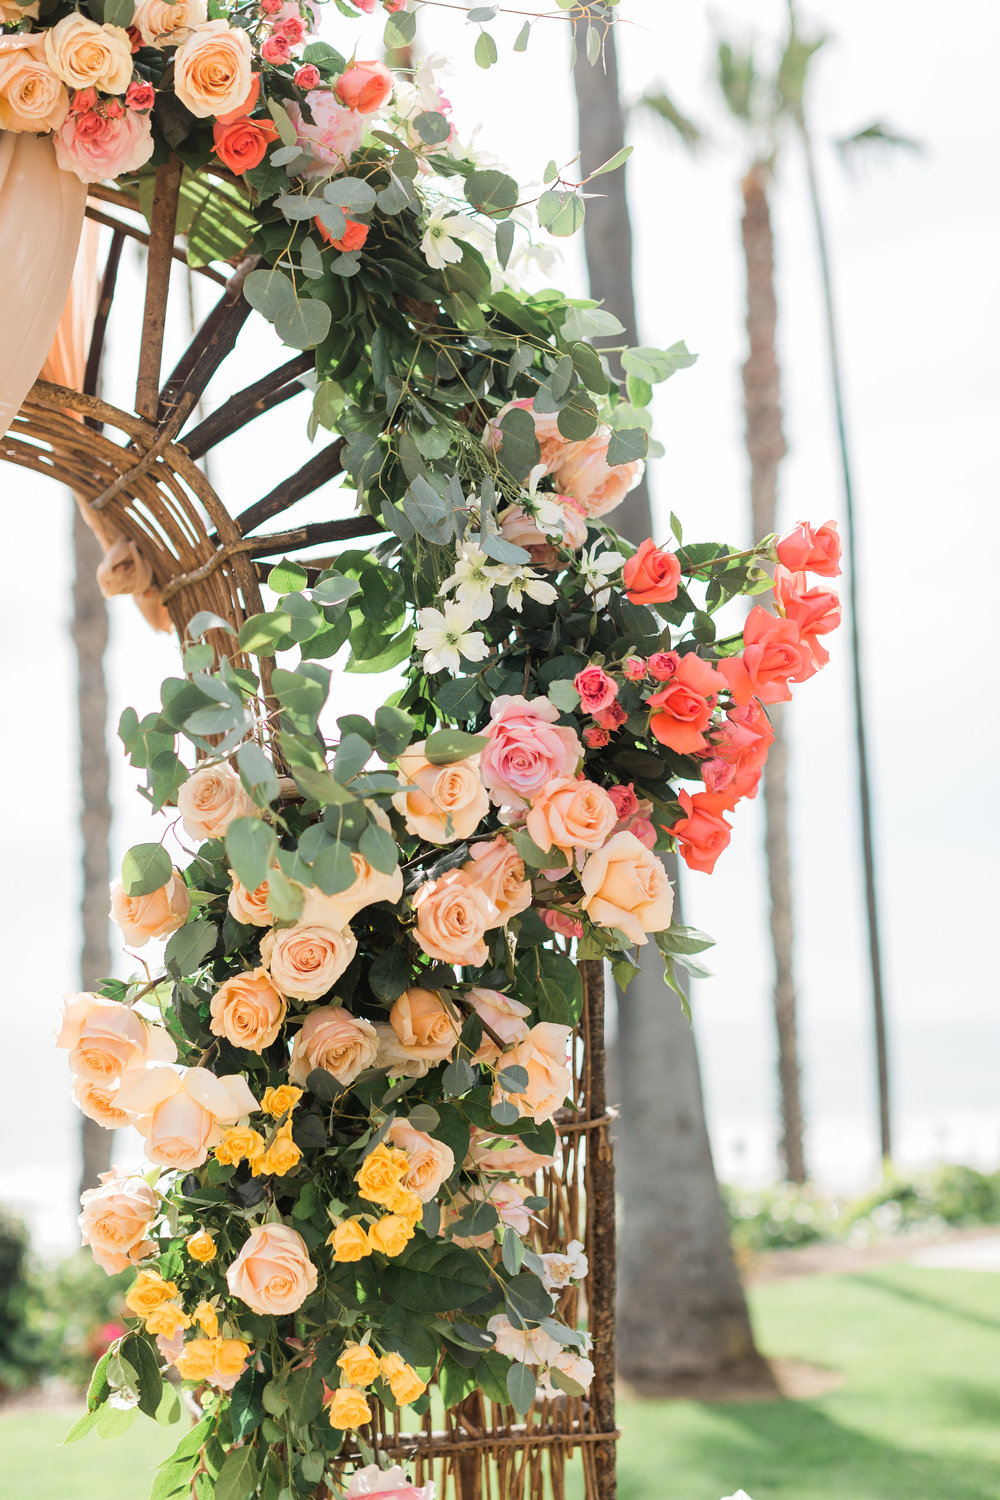 ColorfulOceanfrontWeddingInspiration-OleHanson-SanClemente,Ca-WeddingPhotographer-LovisaPhoto-49.jpg